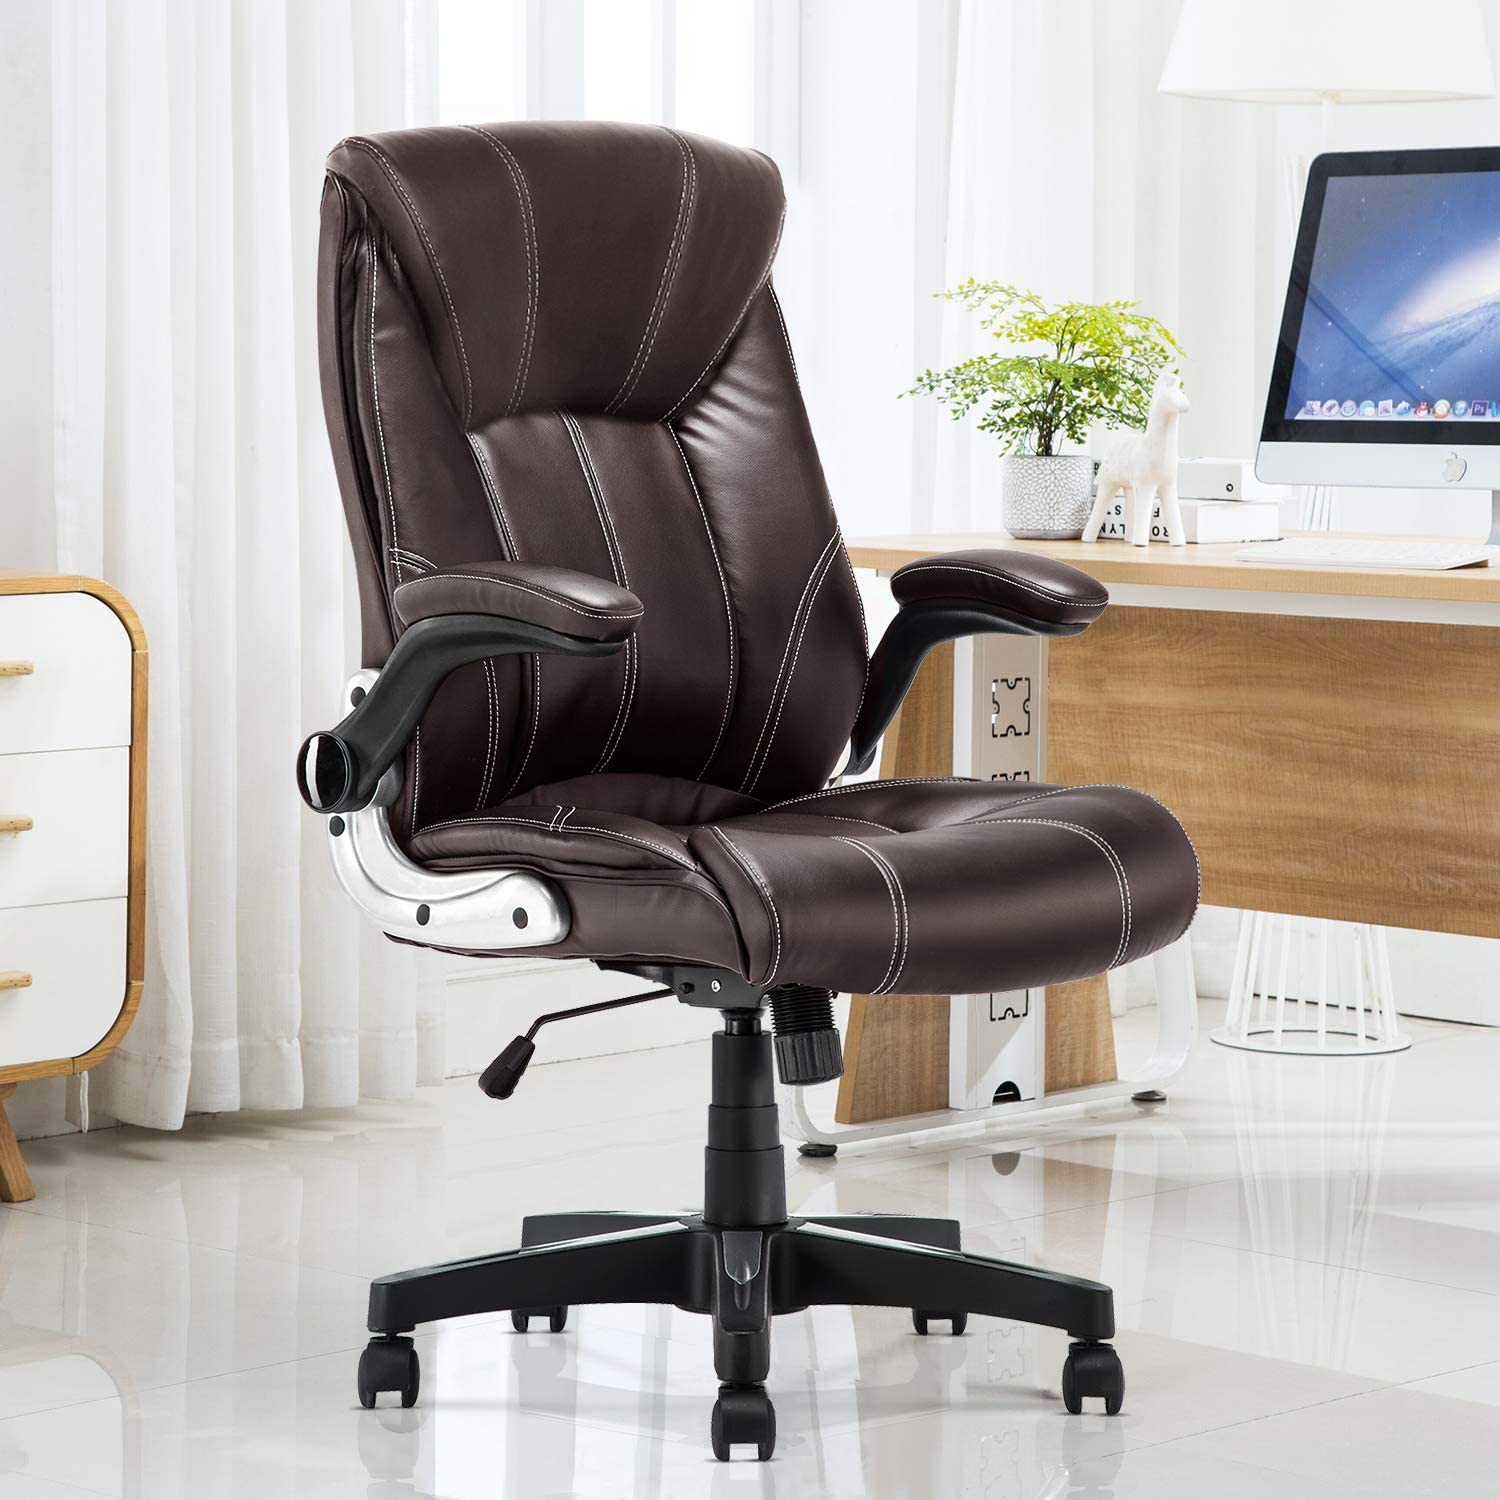 H7b713542c2504dce99dd016b36102ca9v - Yamasoro computer Chair Ergonomic office chairs High-Back Bonded Leather Executive Chair with Lumbar Support PC gaming chair